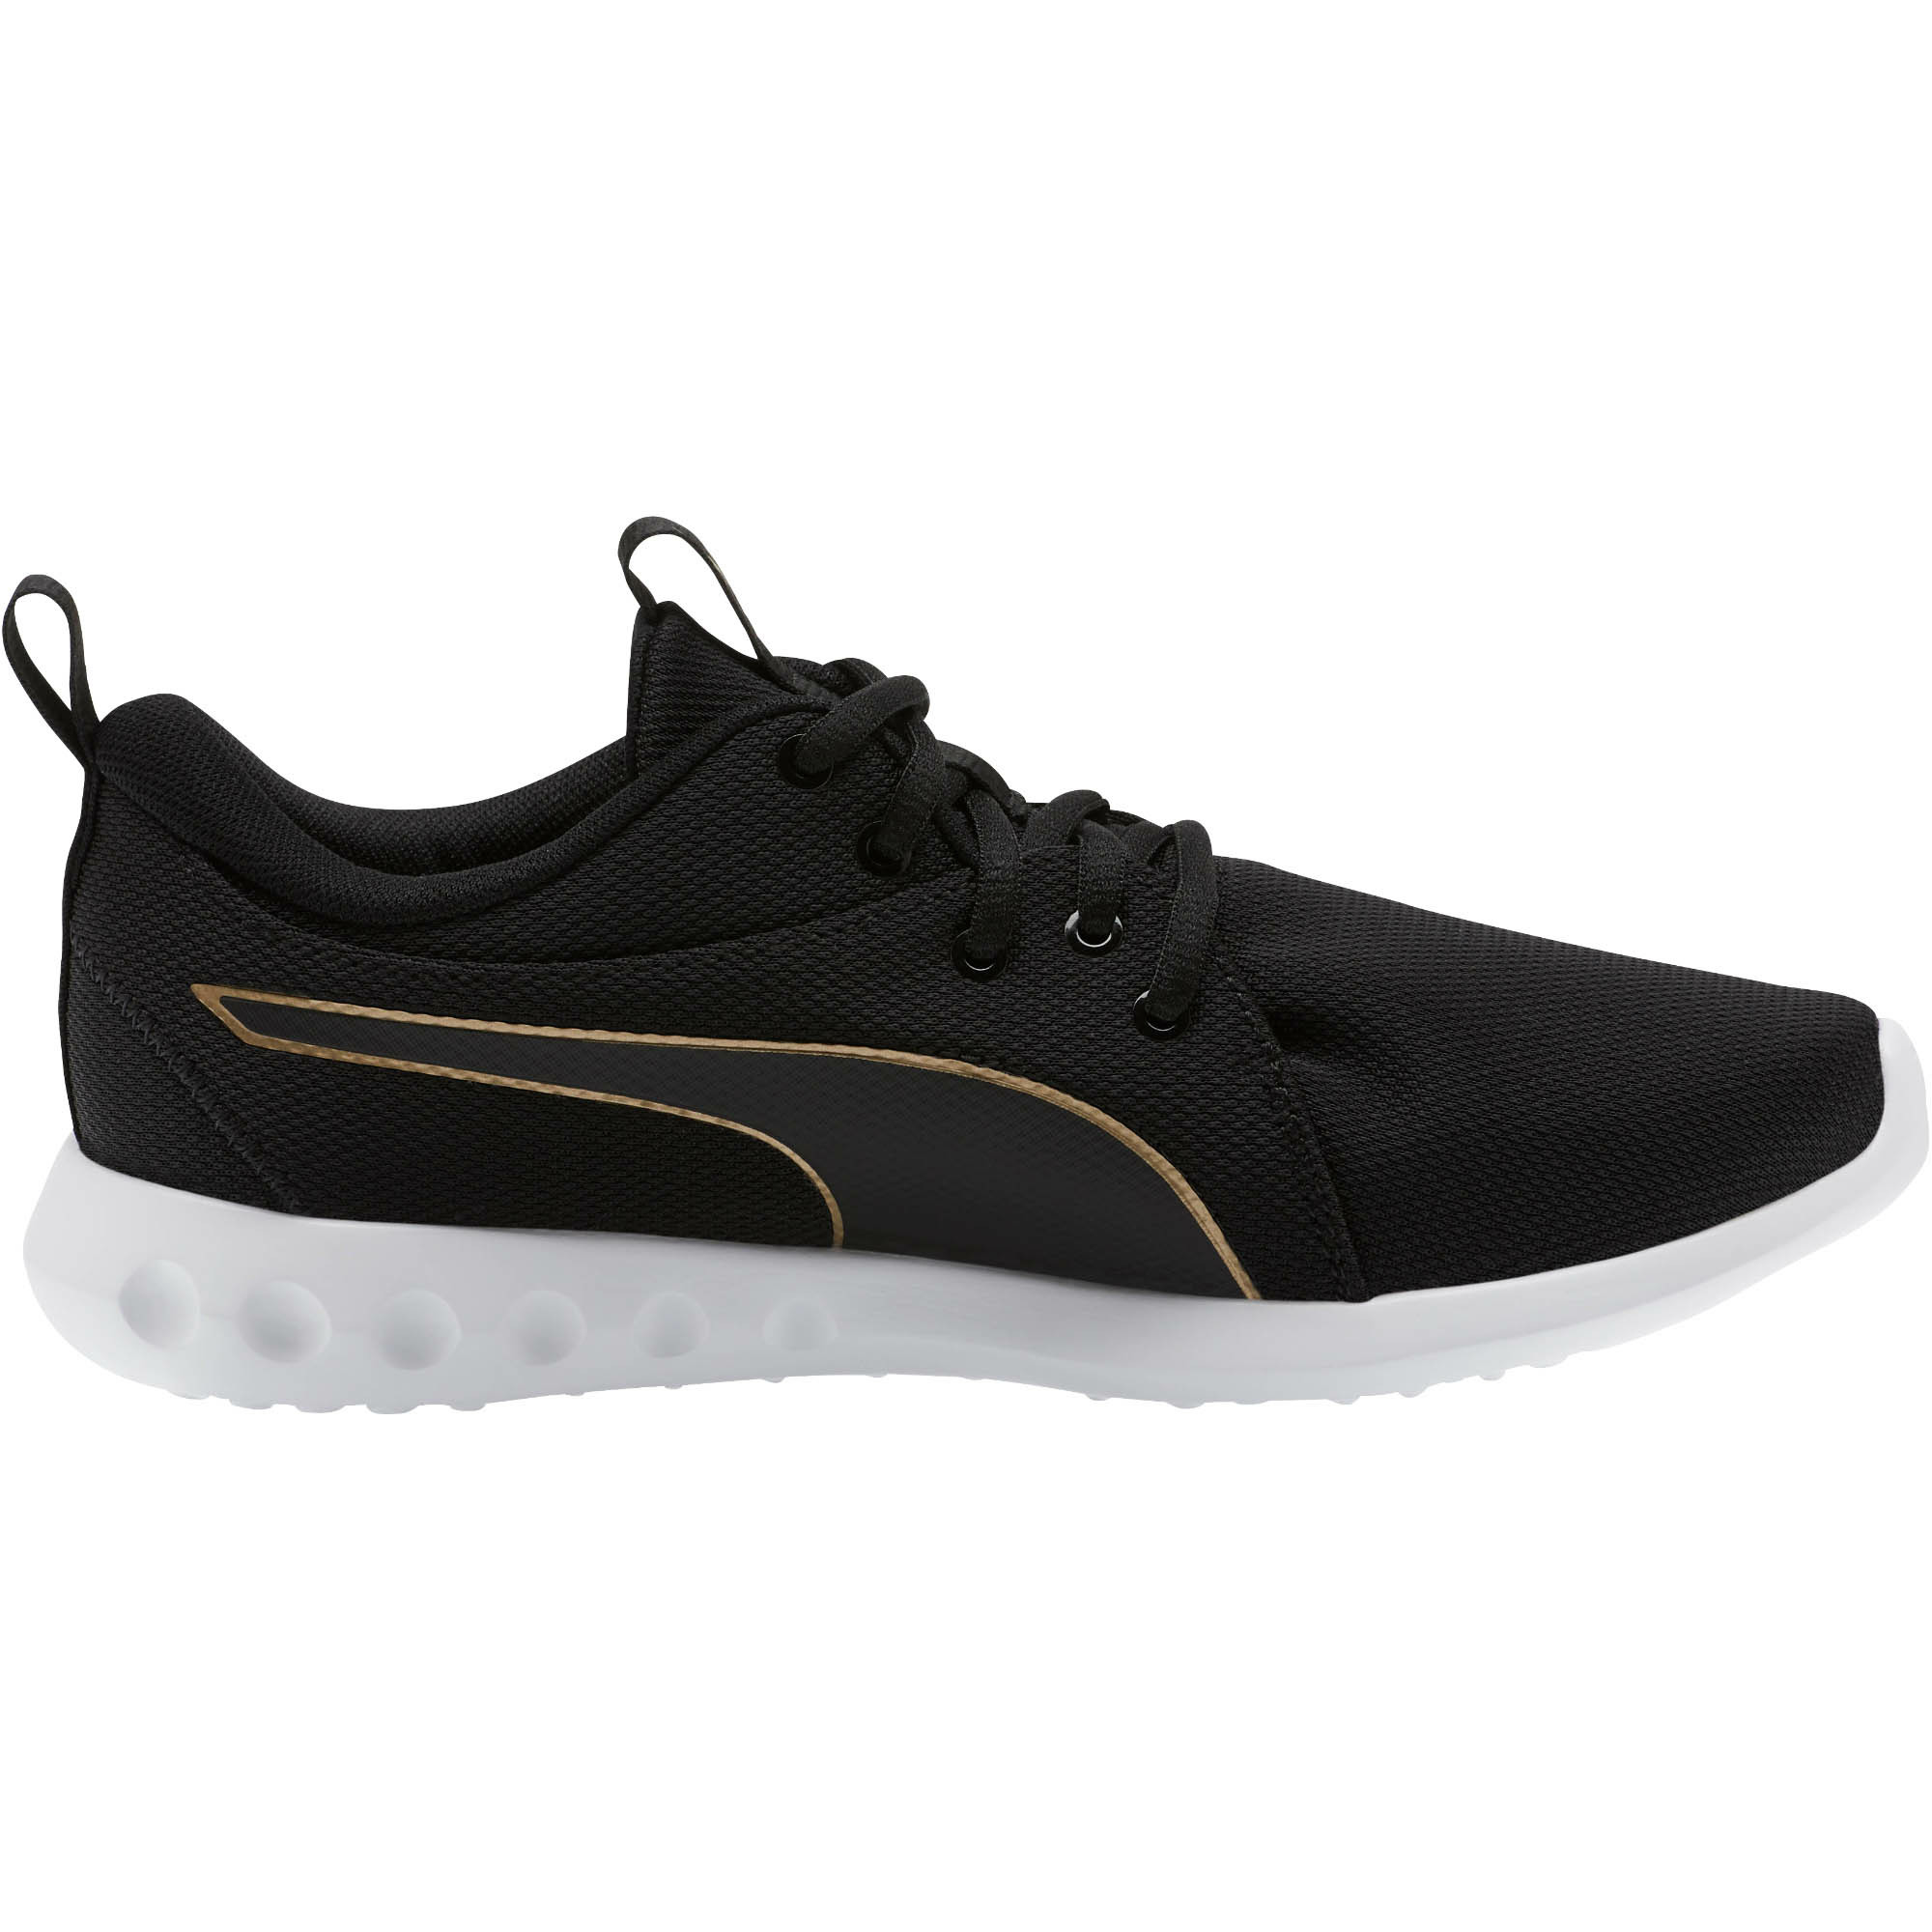 PUMA-Women-039-s-Carson-2-Cosmo-Running-Shoes thumbnail 15